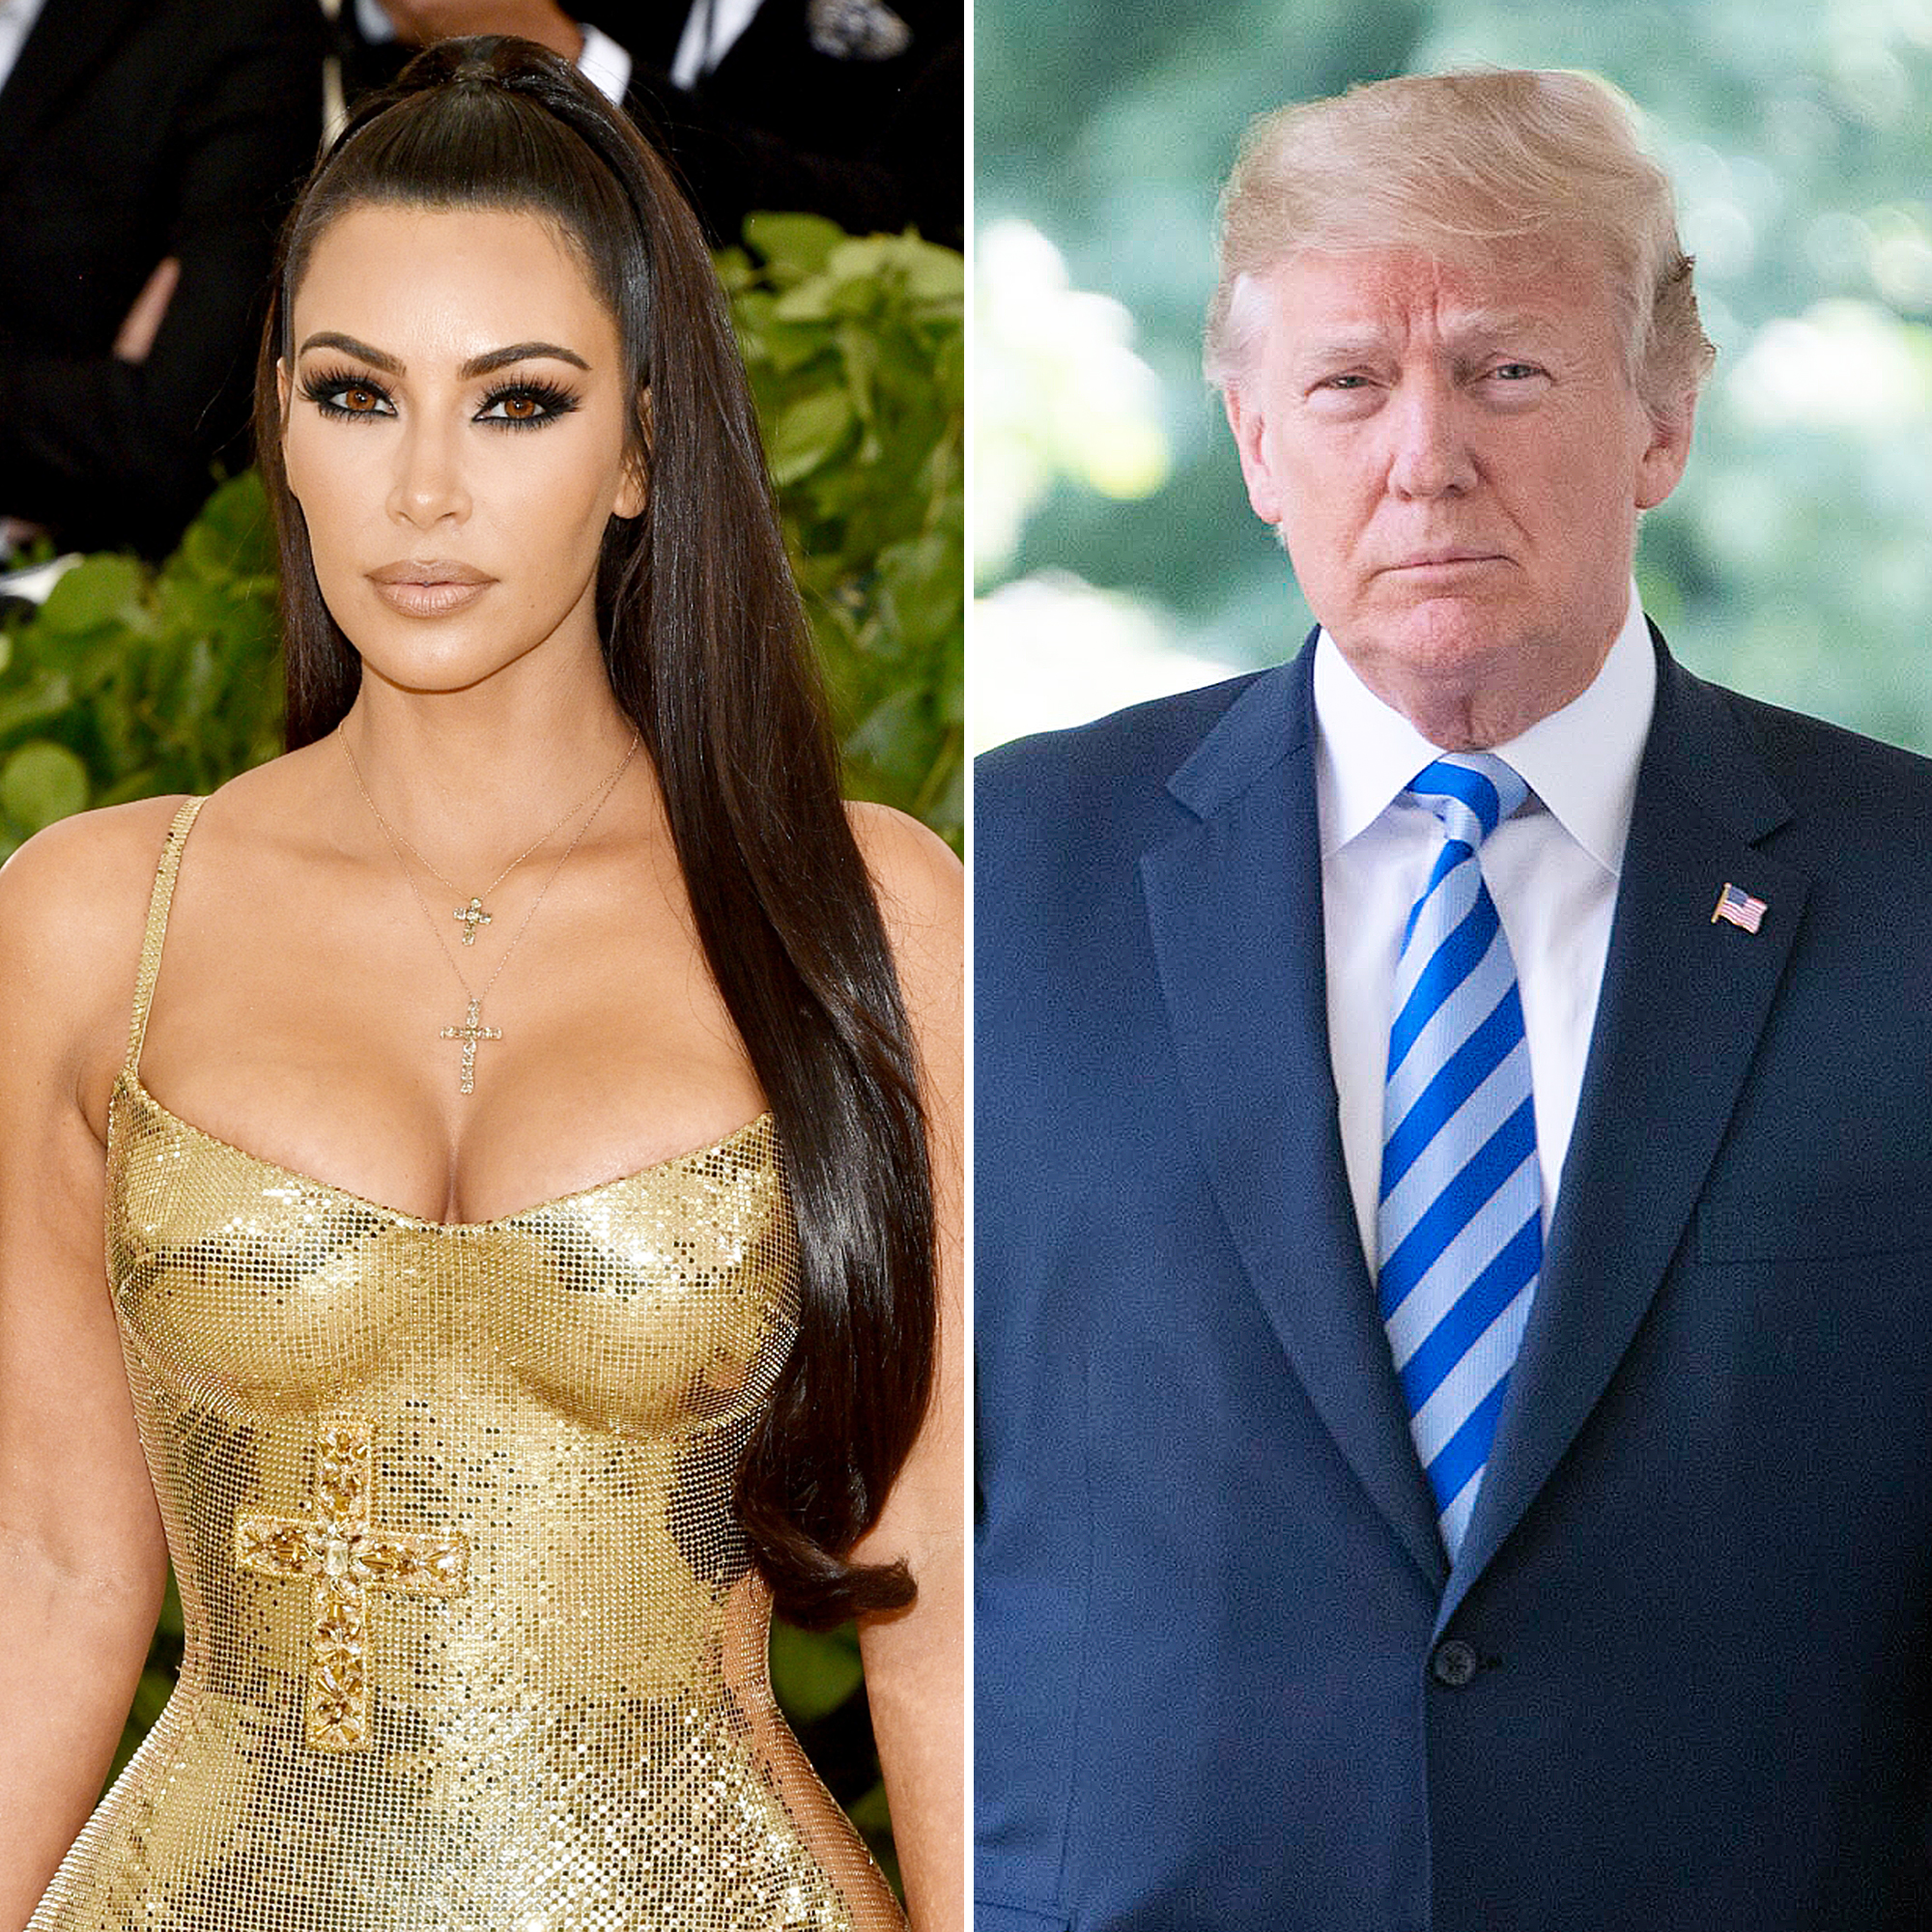 Kim Kardashian met Donald Trump at White House to discuss prison reform